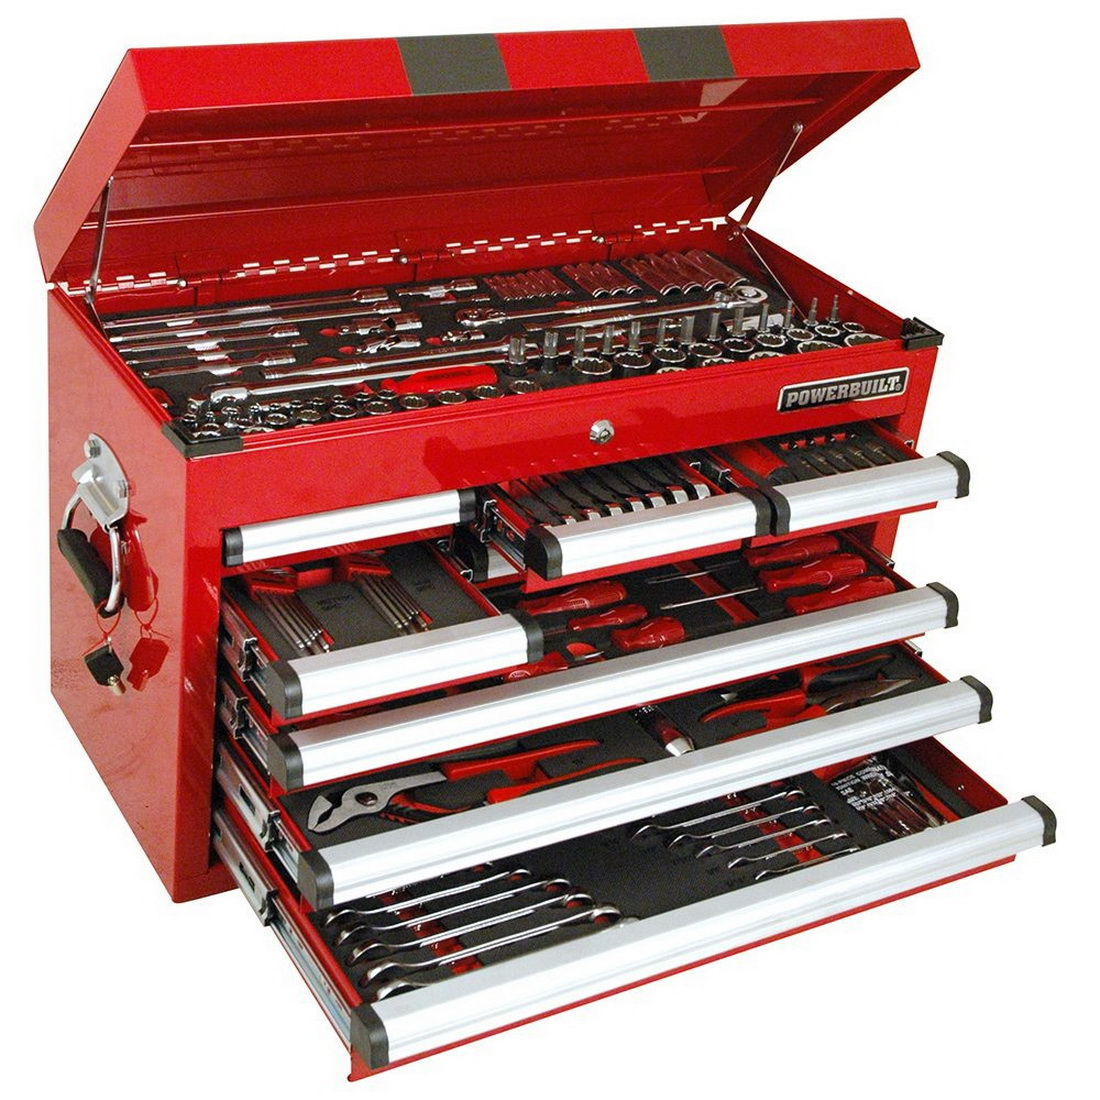 248 Piece Complete Tool Chest and Assorted Tools CCT004F